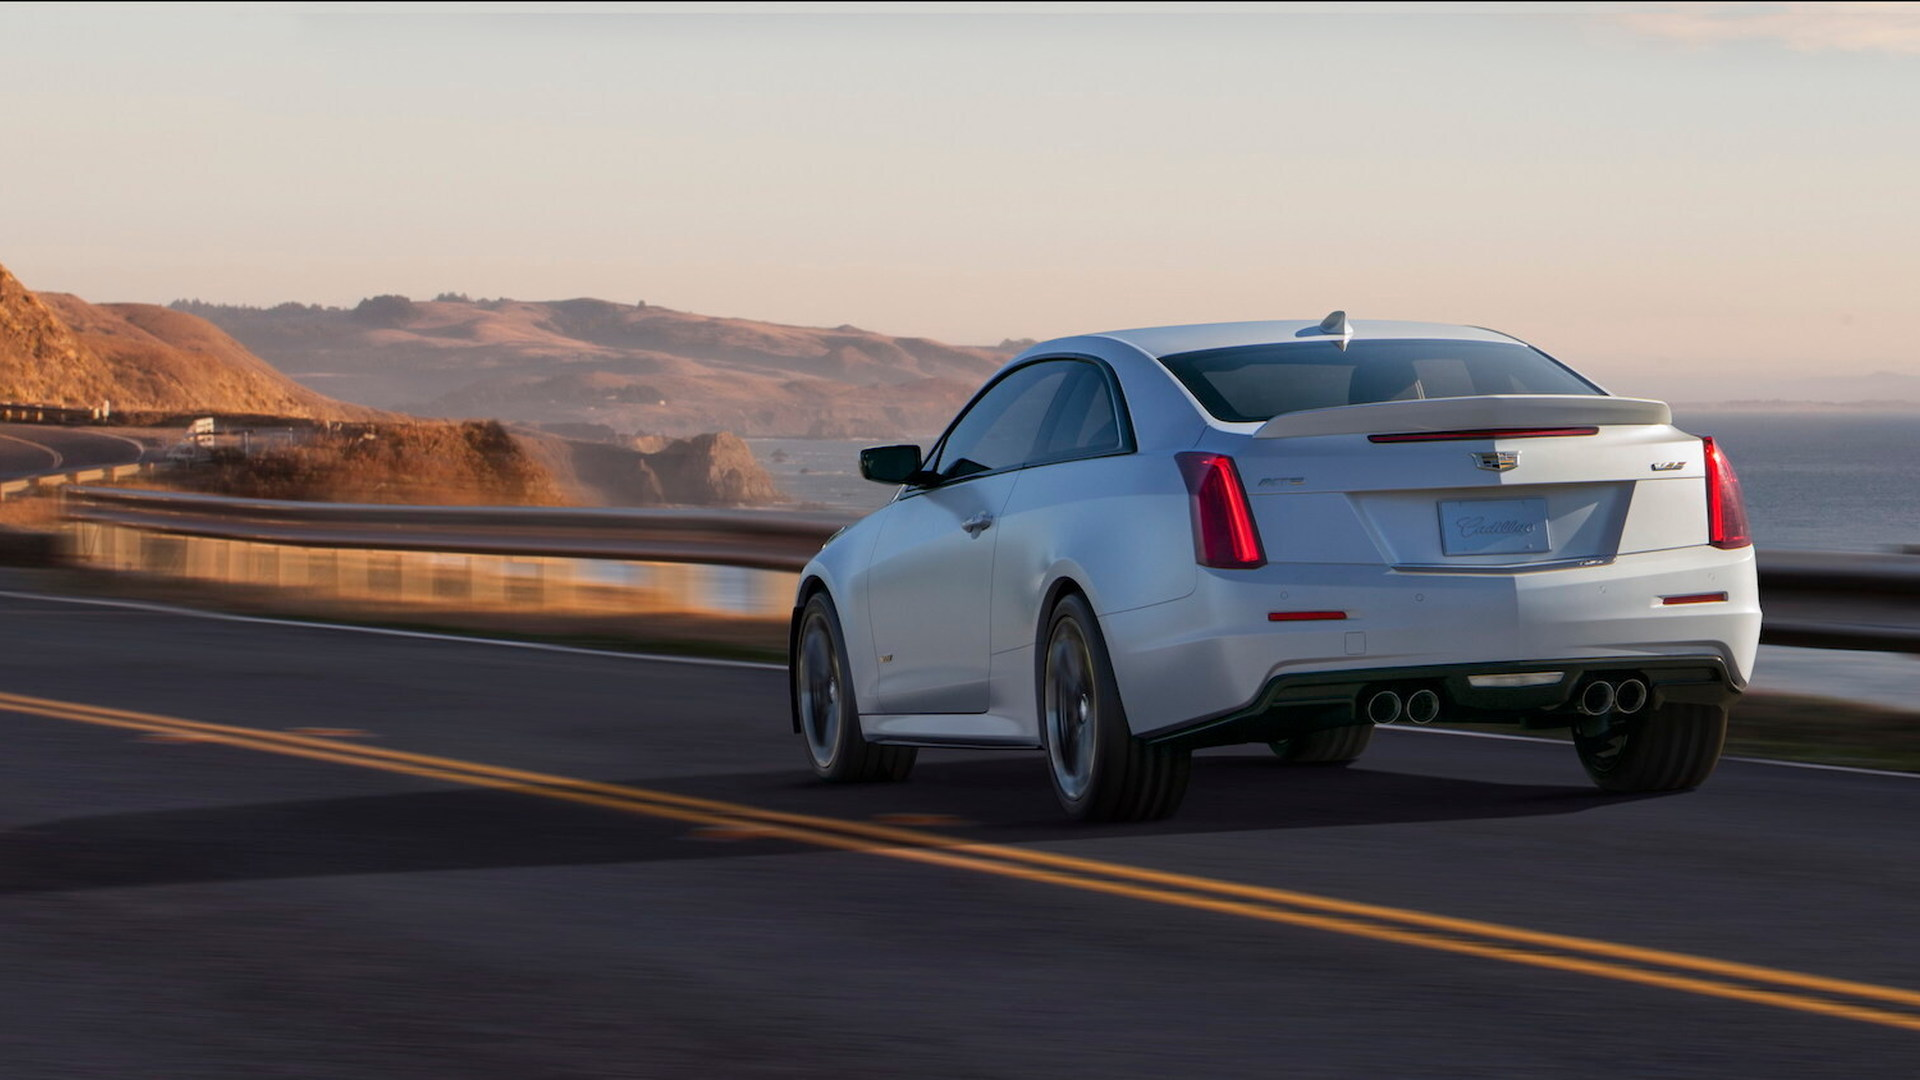 2019 Cadillac ATS-V Coupe pricier but better equipped